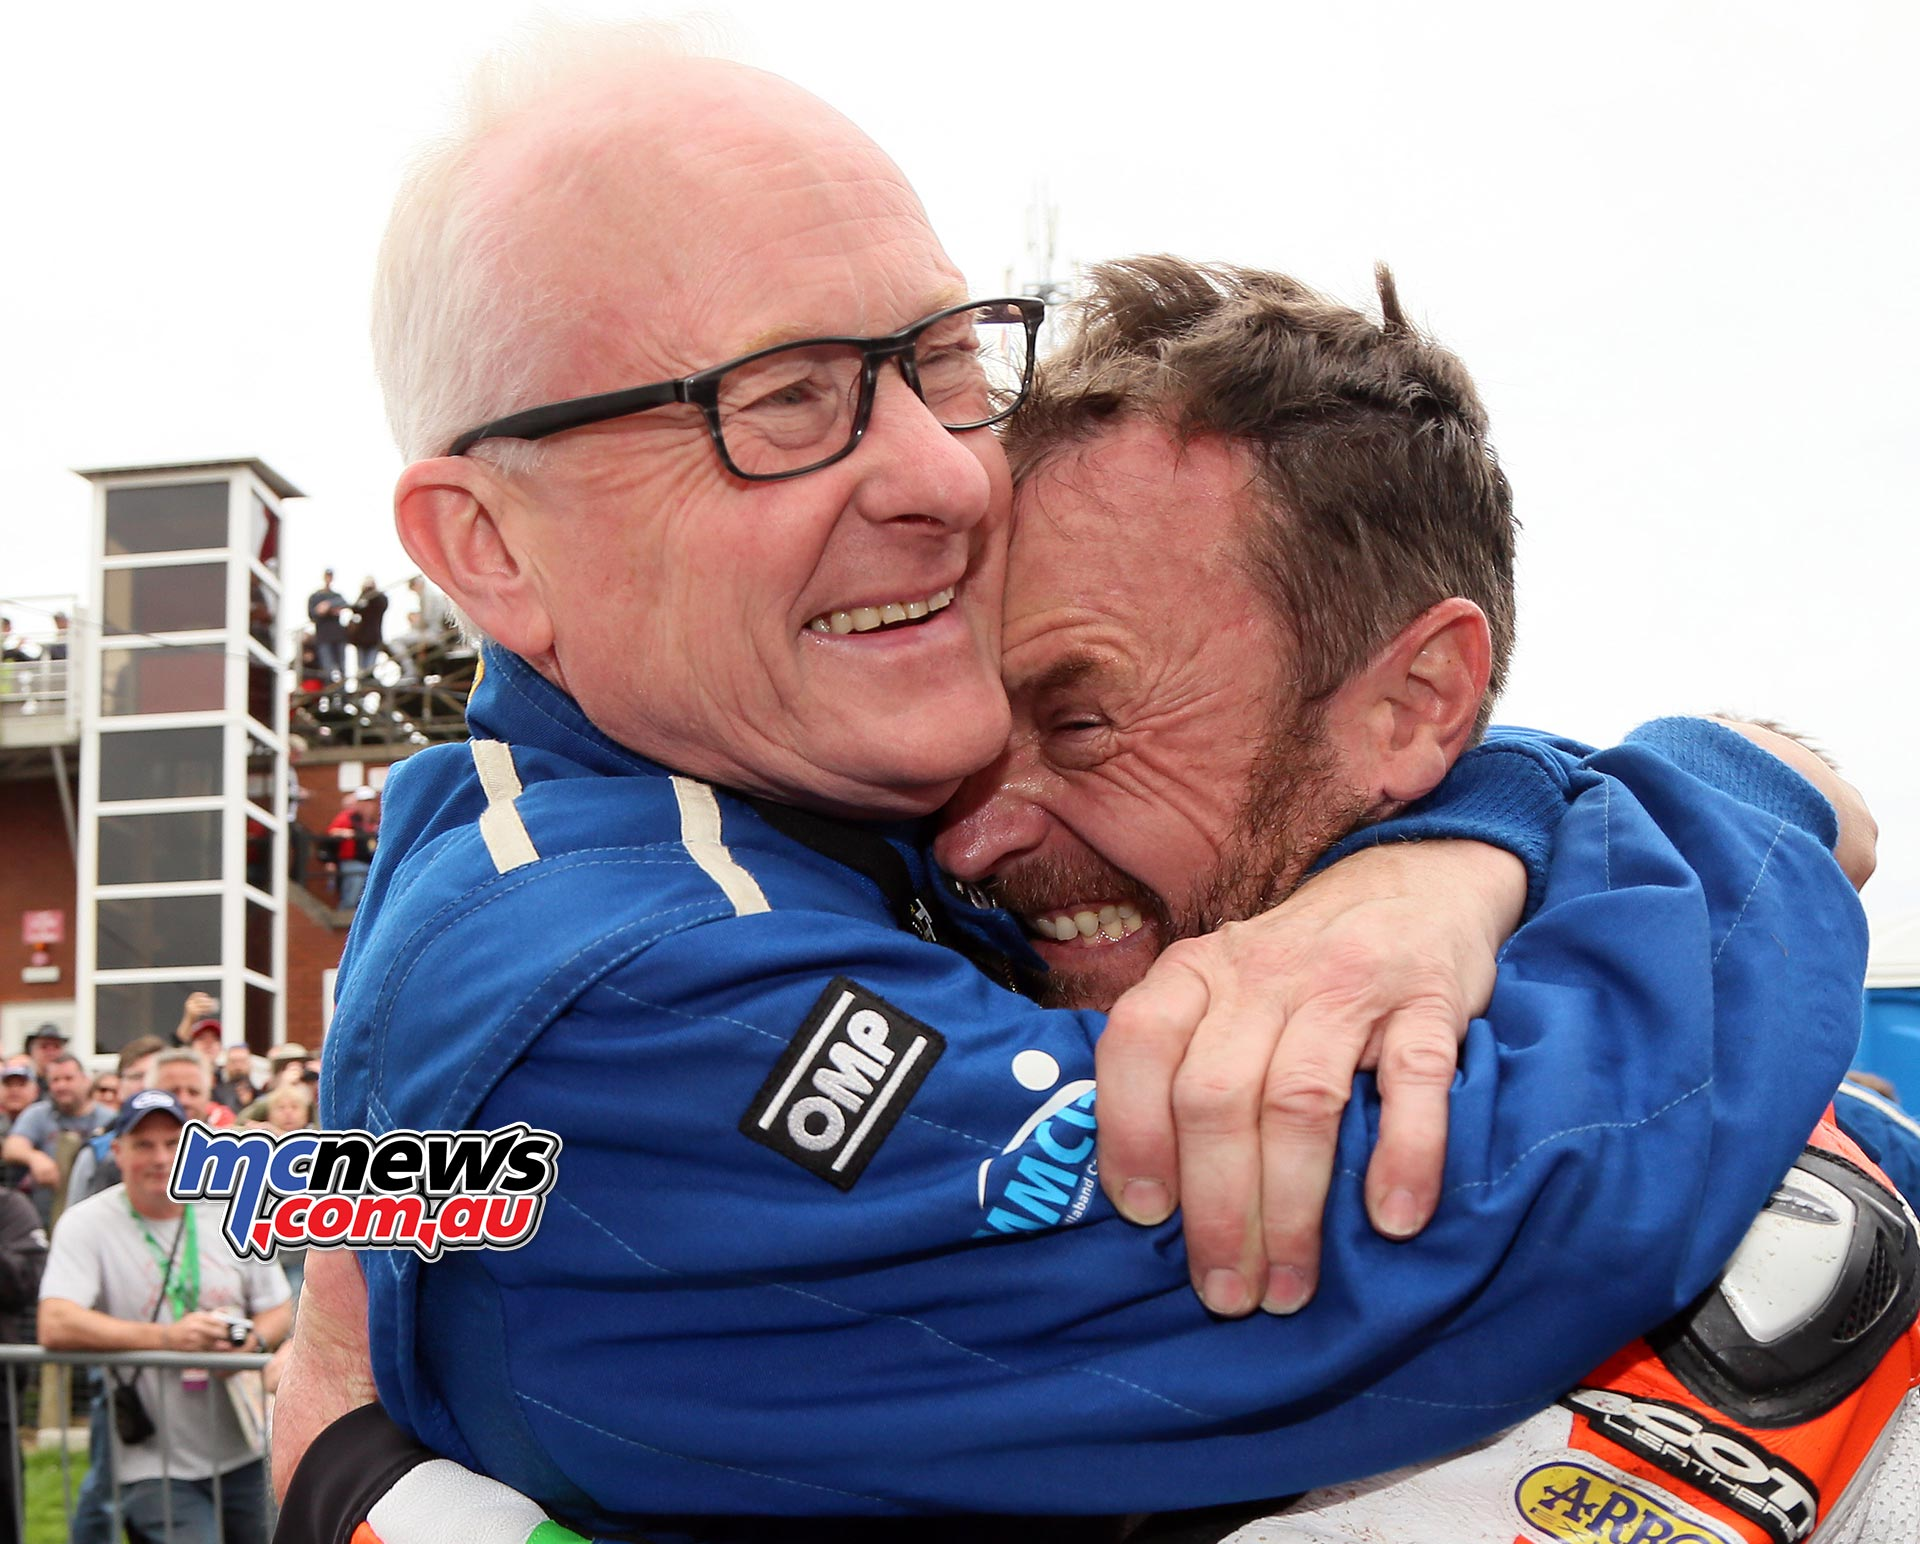 Clive Padgett hugs Bruce Anstey after his record-setting win in the Dunlop Lightweight Classic TT Race. Photo Stephen Davison / Pacemaker Press Intl